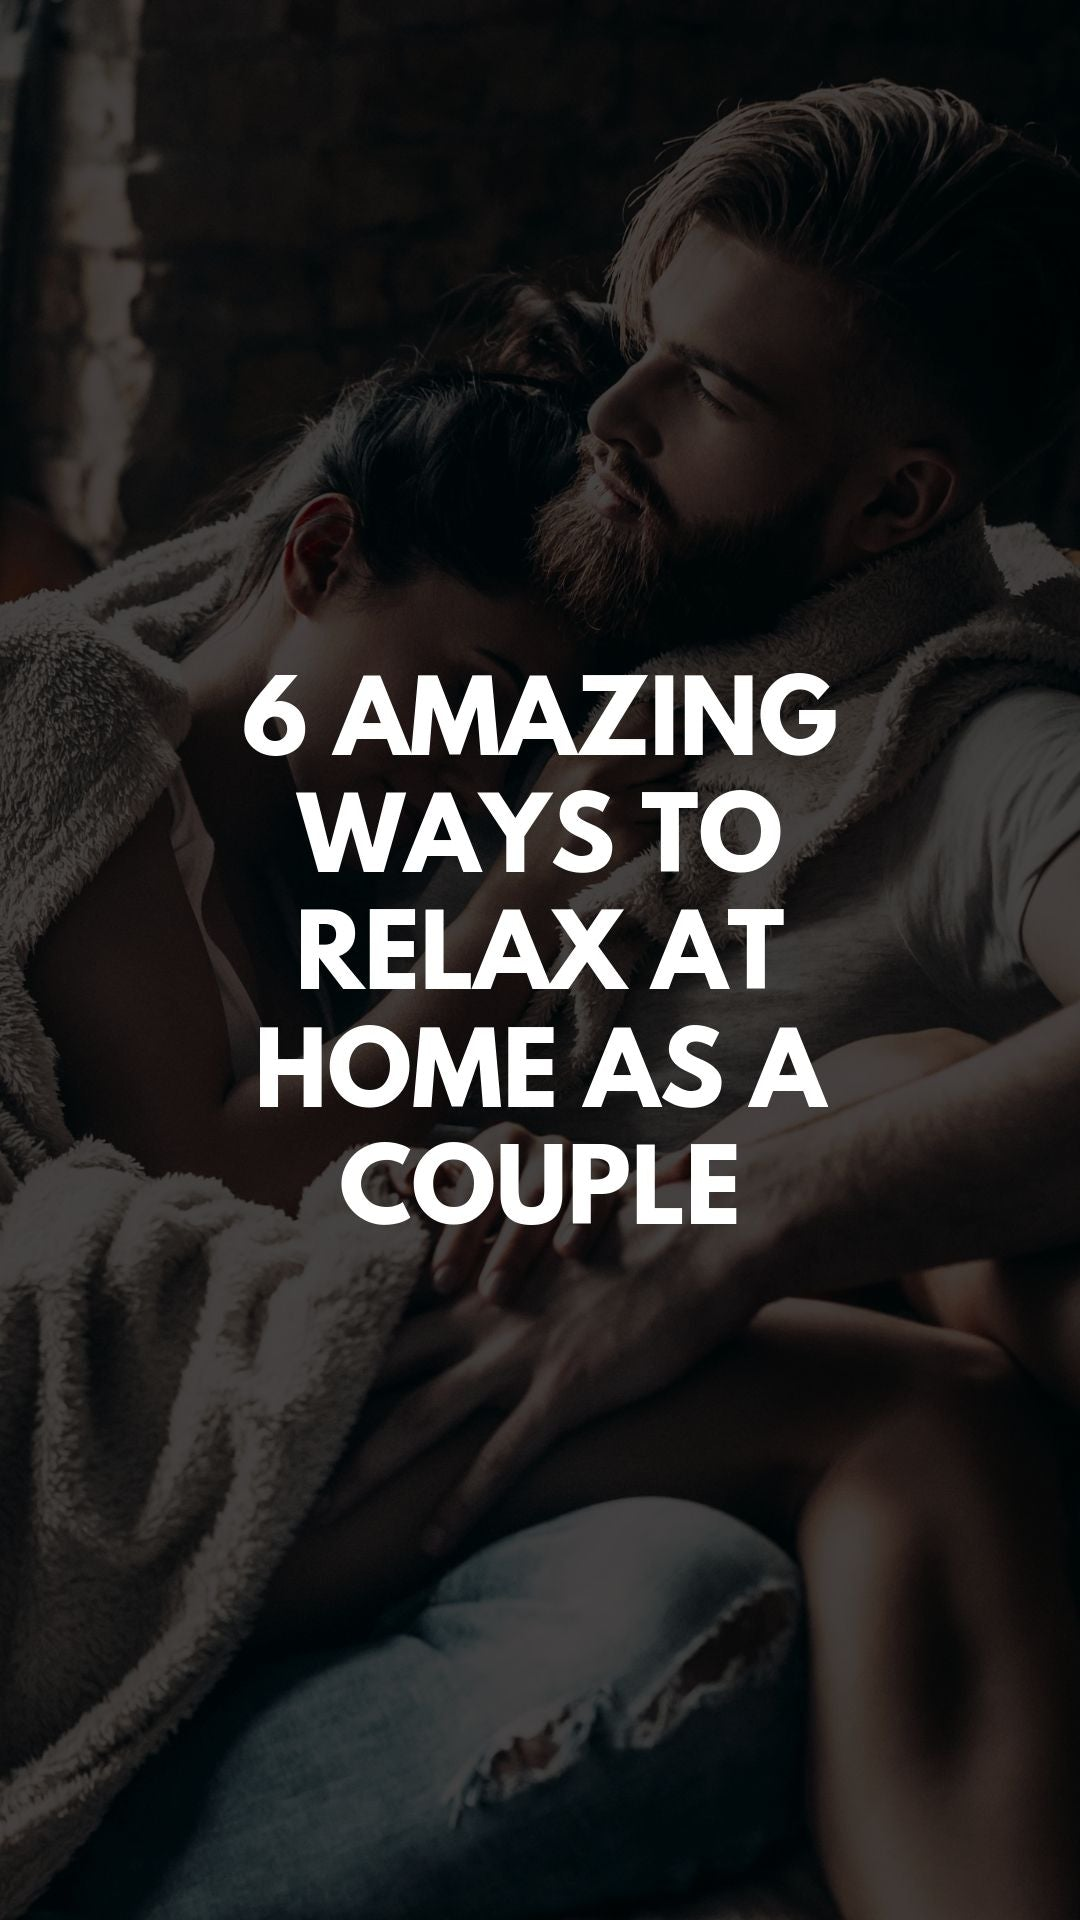 6 Amazing Ways to Relax At Home As a Couple